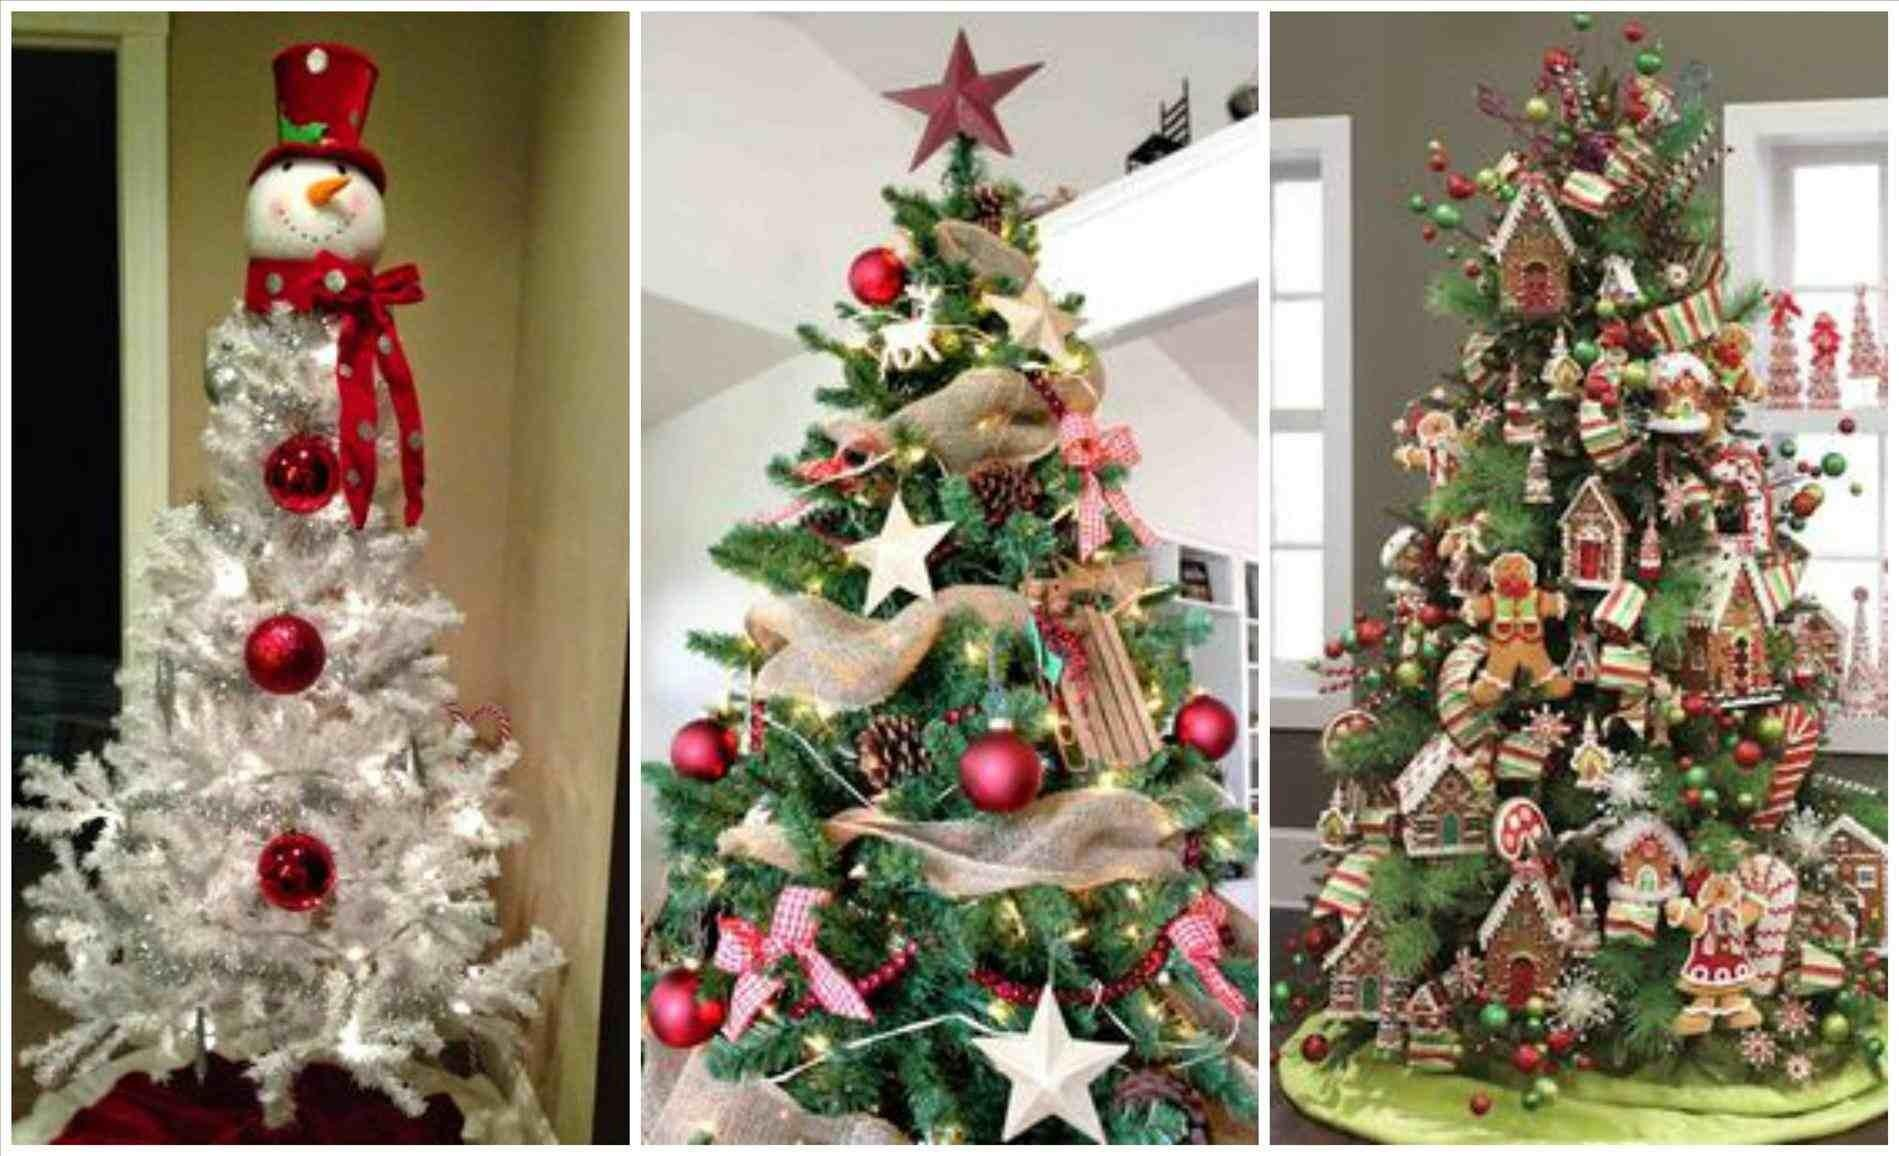 Christmas Tree Decorations Ideas Temasistemi